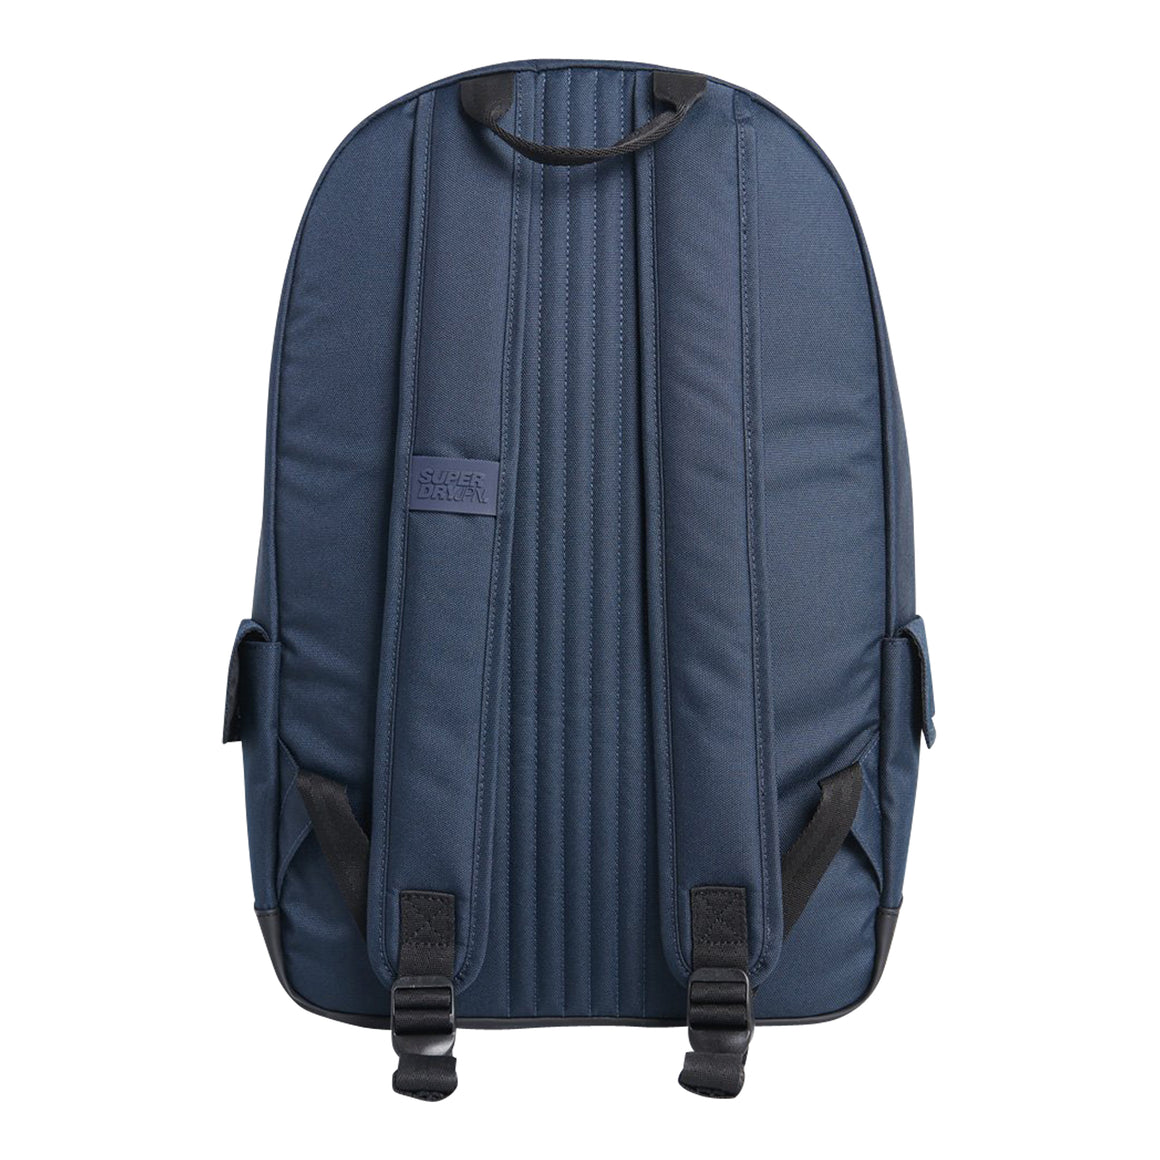 Aqua Star Montana Backpack for Women in Dark Navy